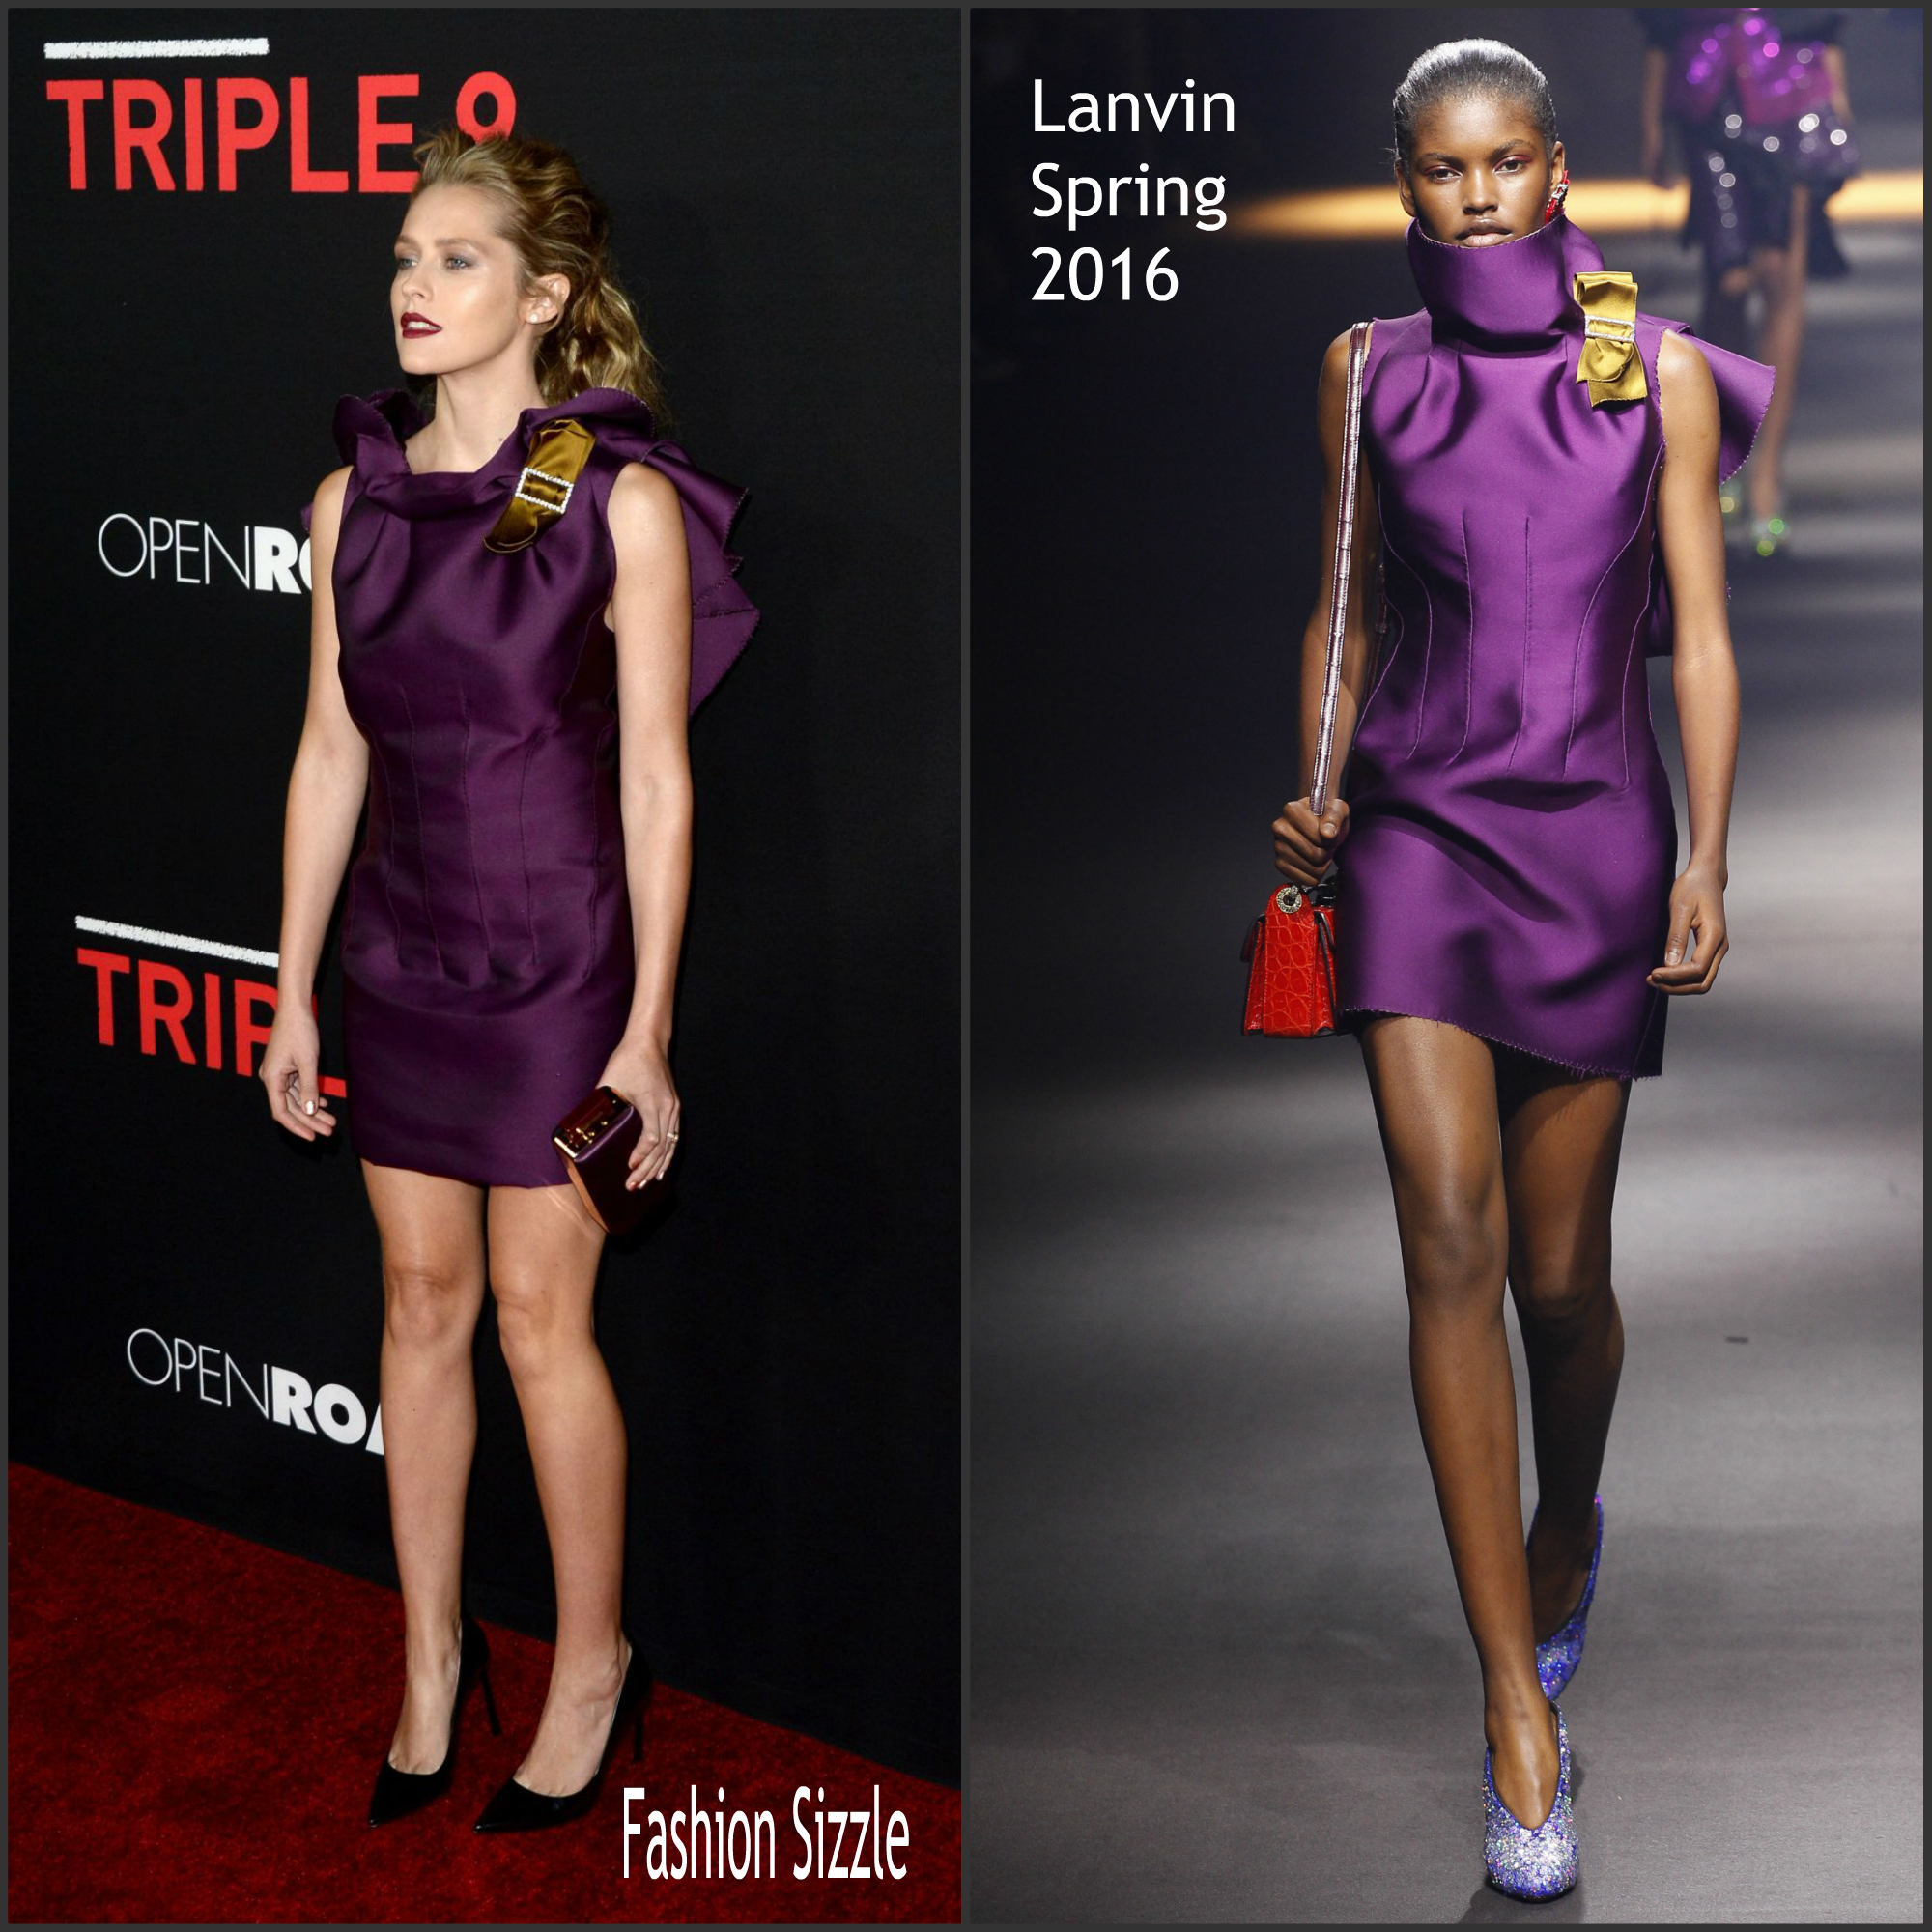 teresa-palmer-in-lanvin-triple-9-los-angeles-premiere